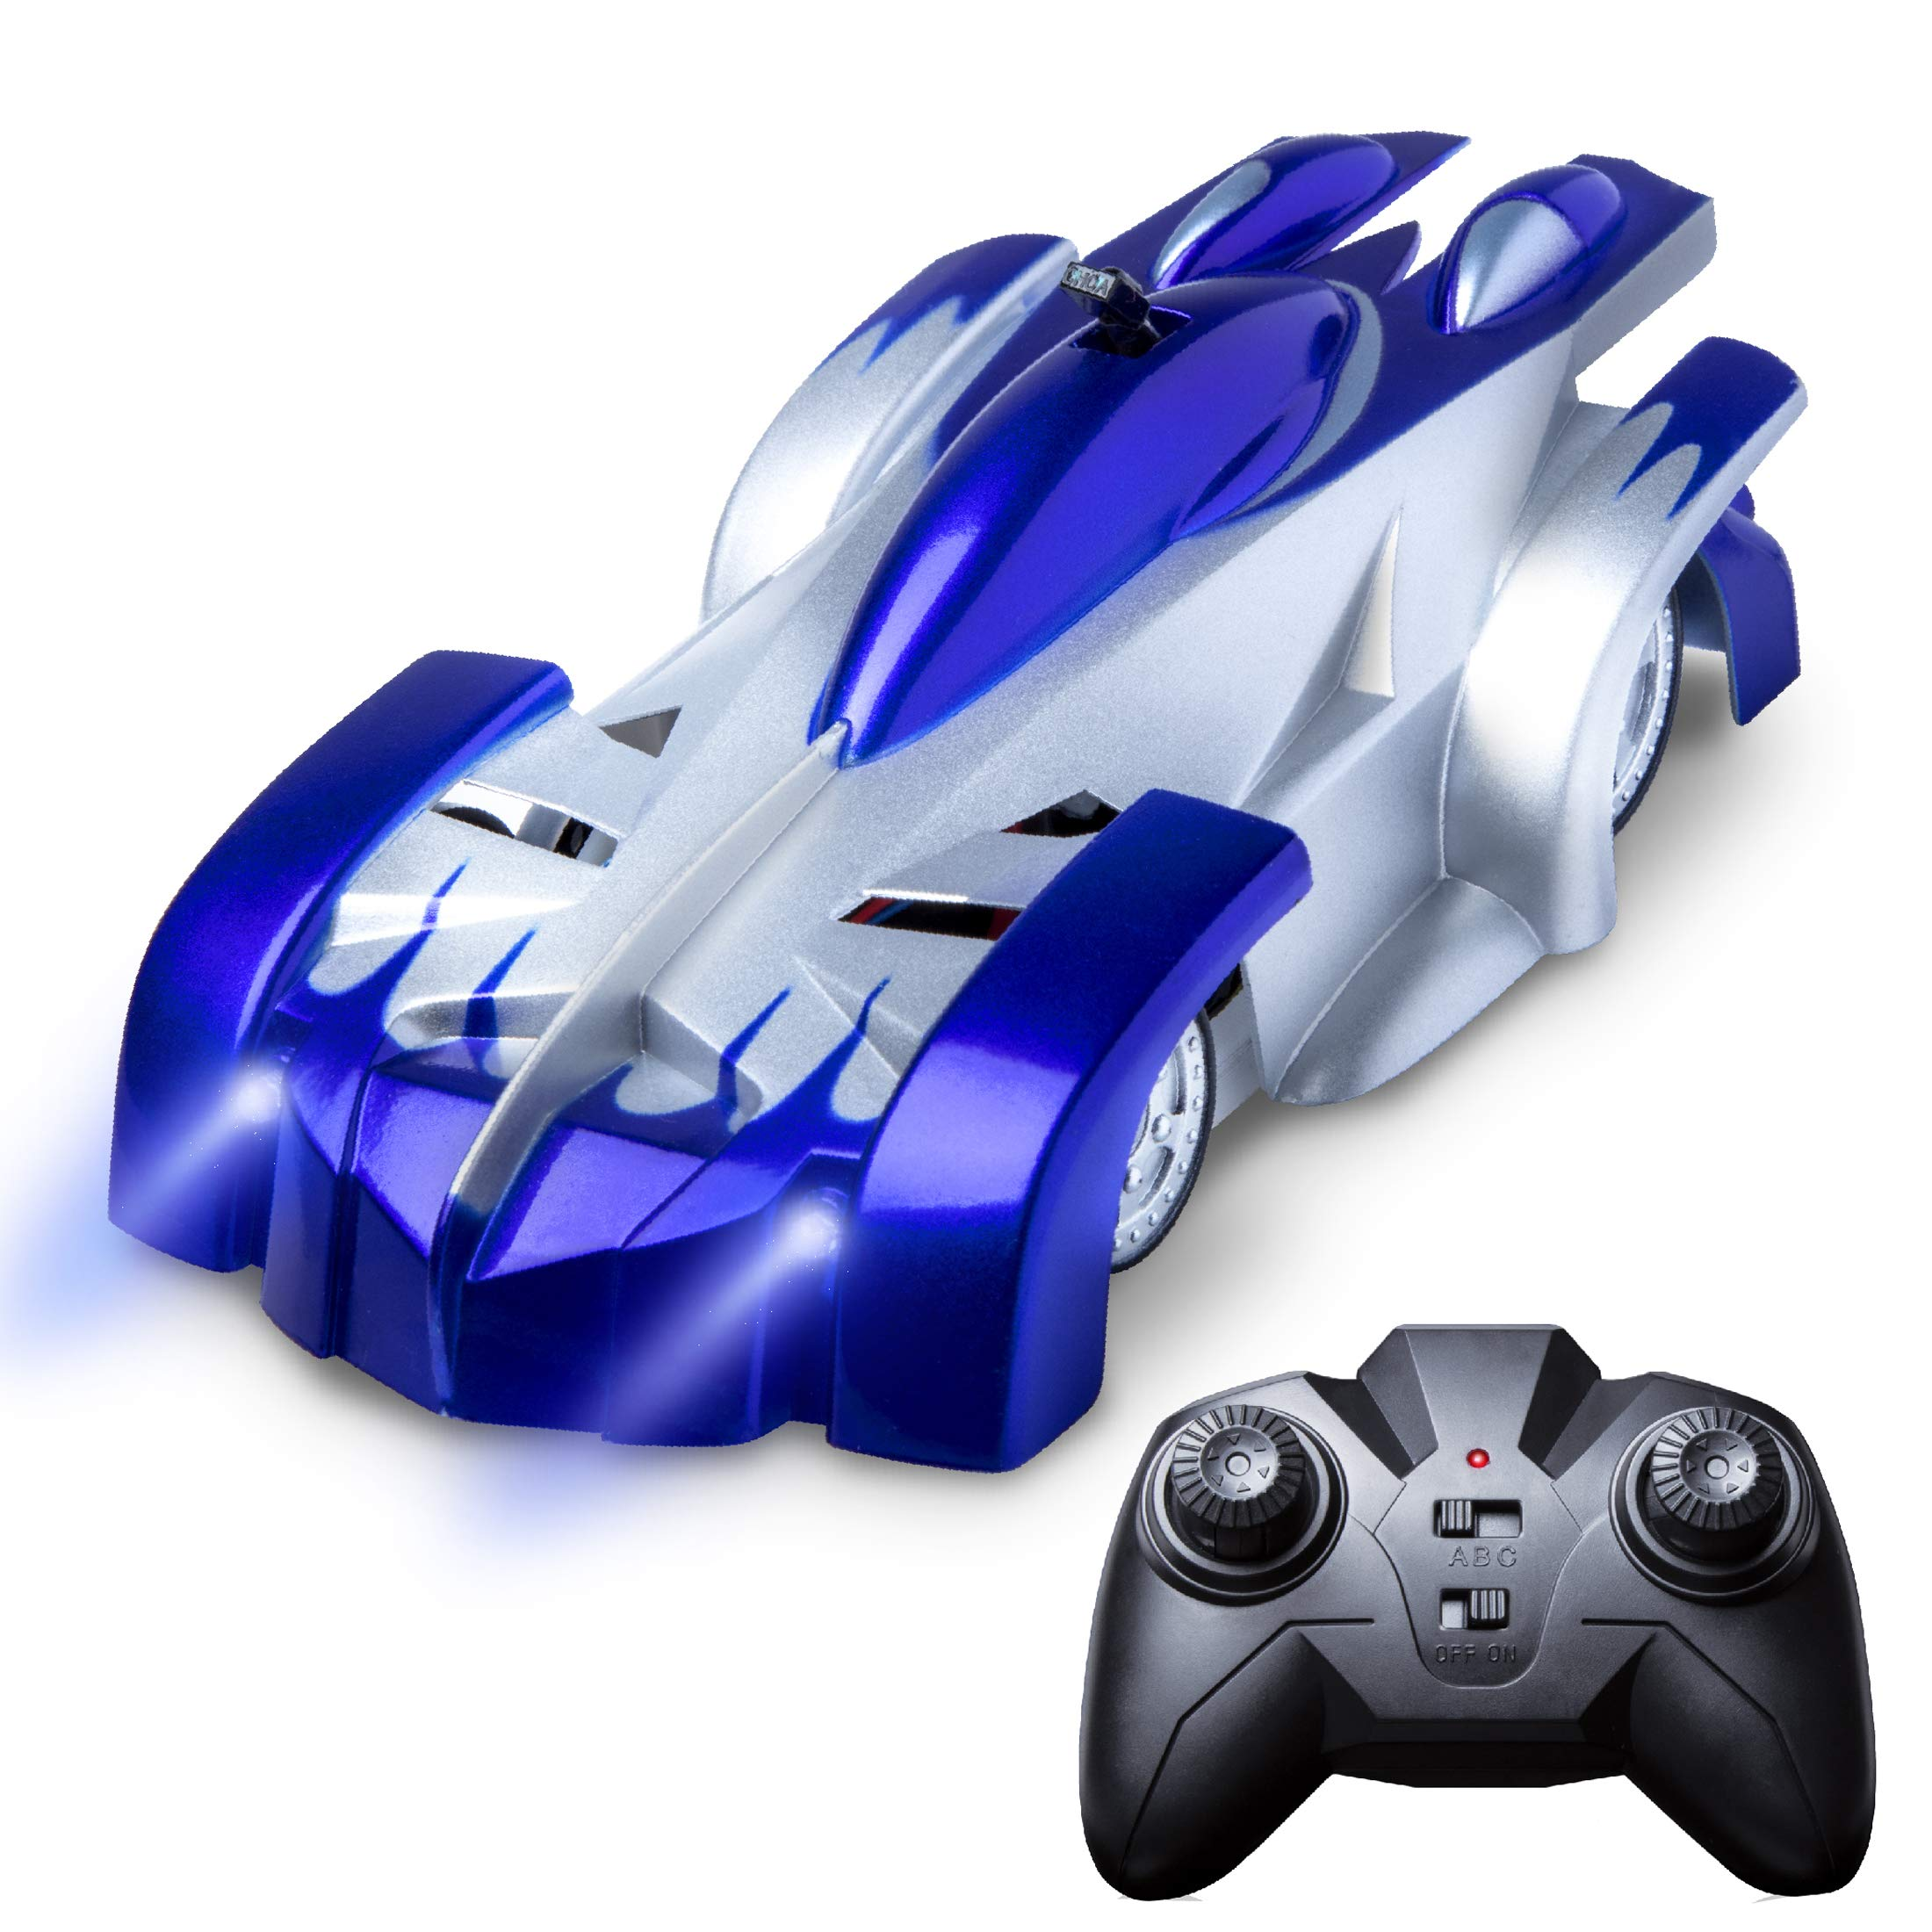 Force1 Gravity Defying RC Car - Remote Control Car for Floor or Wall Rechargeable Fast RC Car (Blue) by Force1 (Image #1)